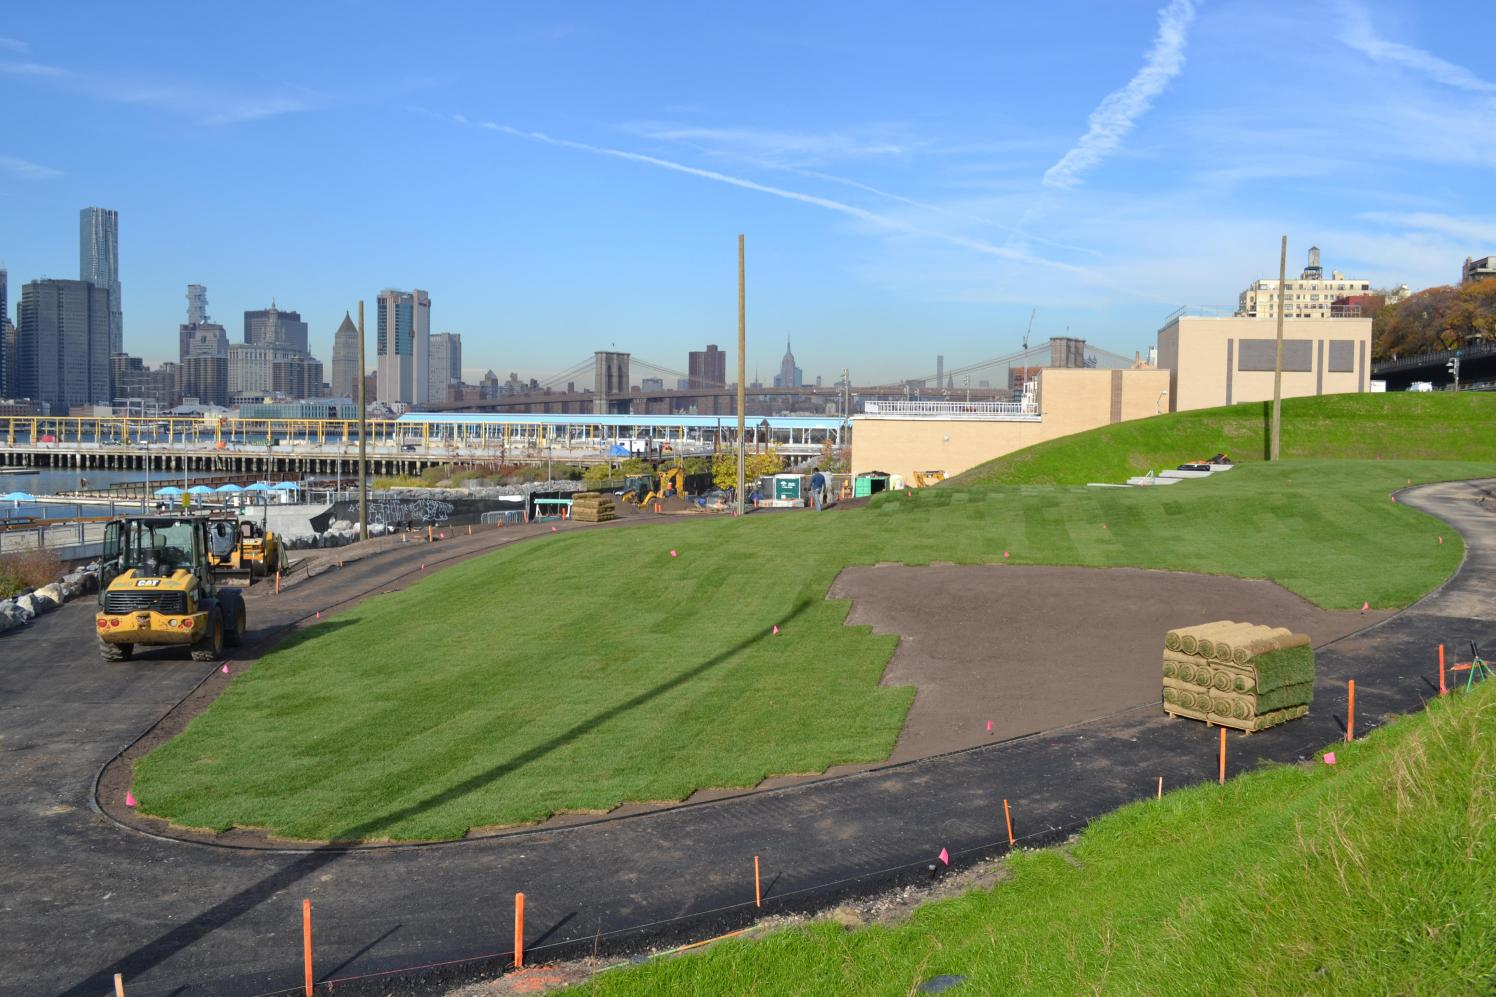 Construction Update Pier 5 Facilities And Landscape